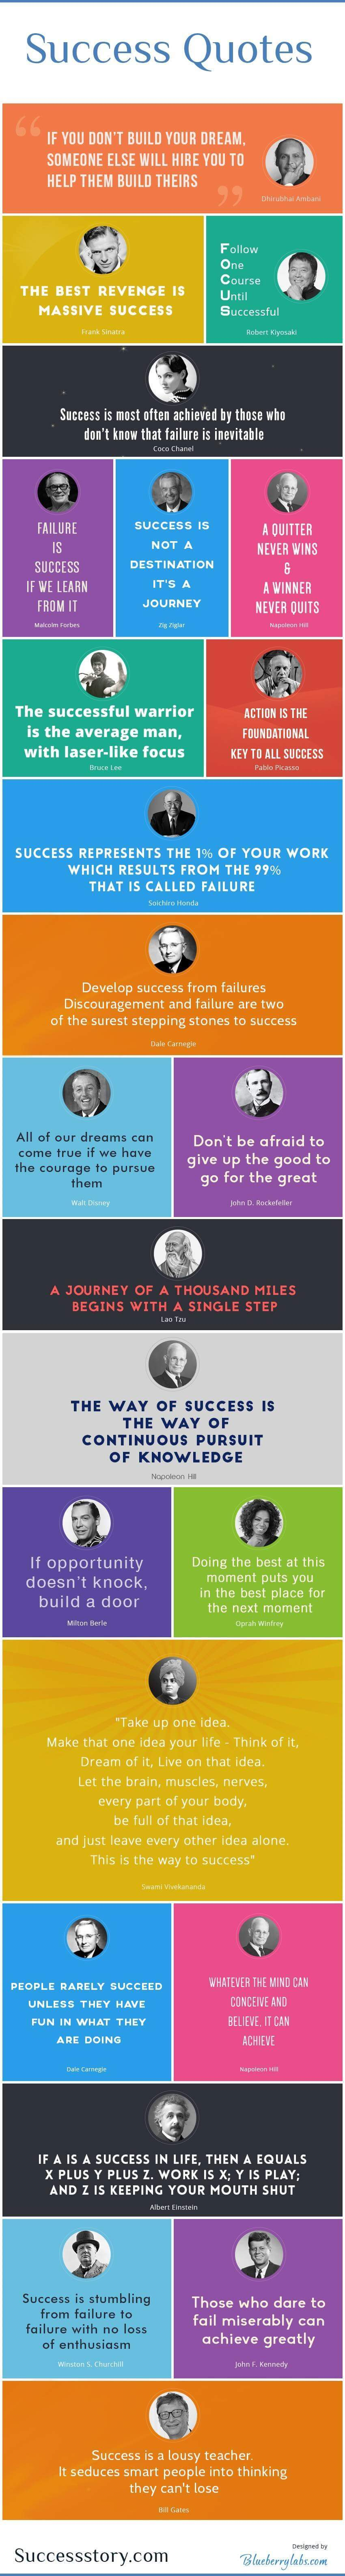 Success quotes infographic - Toolshero